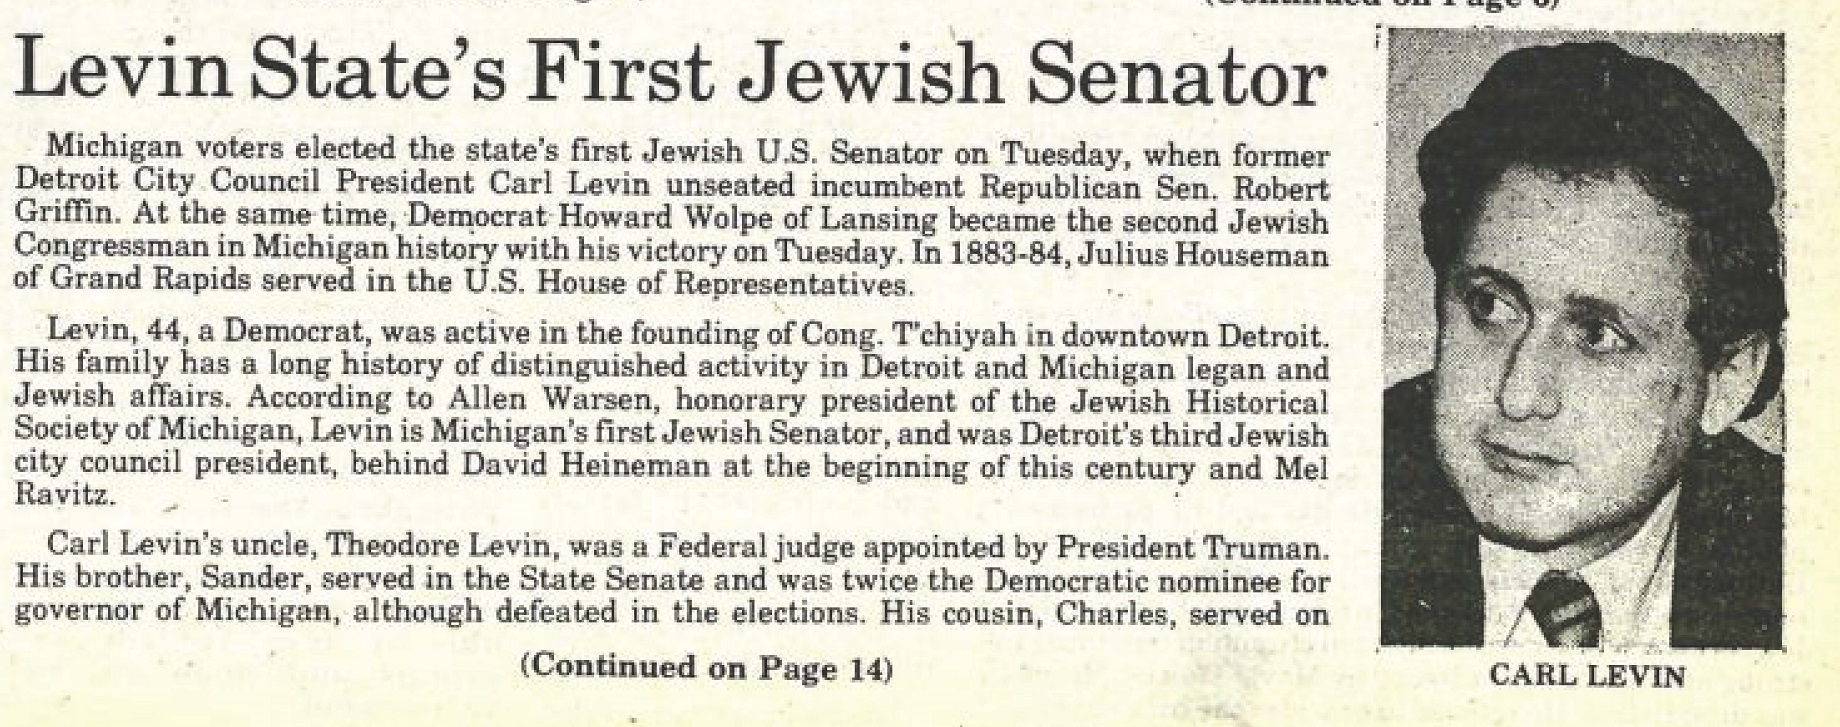 "clipping from the Detroit Jewish News from 1978 showing Carl Levin winning the election to become the first Jewish U.S. Senator. The headline reads ""Levin State's First Jewish Senator"" Nov. 10, 1978"